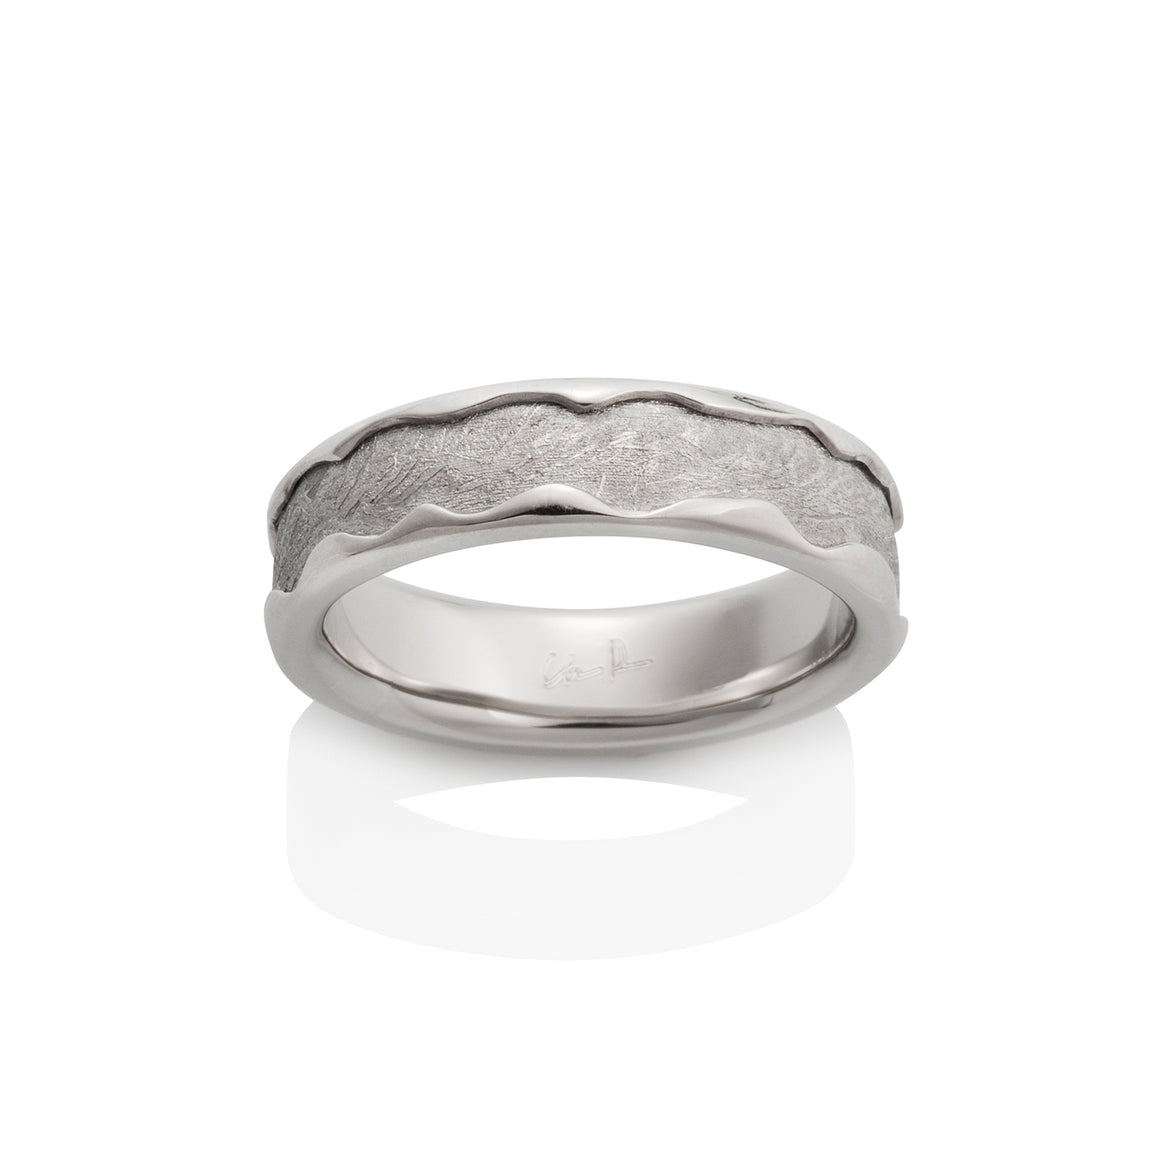 Chris Ploof 18K Palladium White Gold Arcturus Meteorite Ring